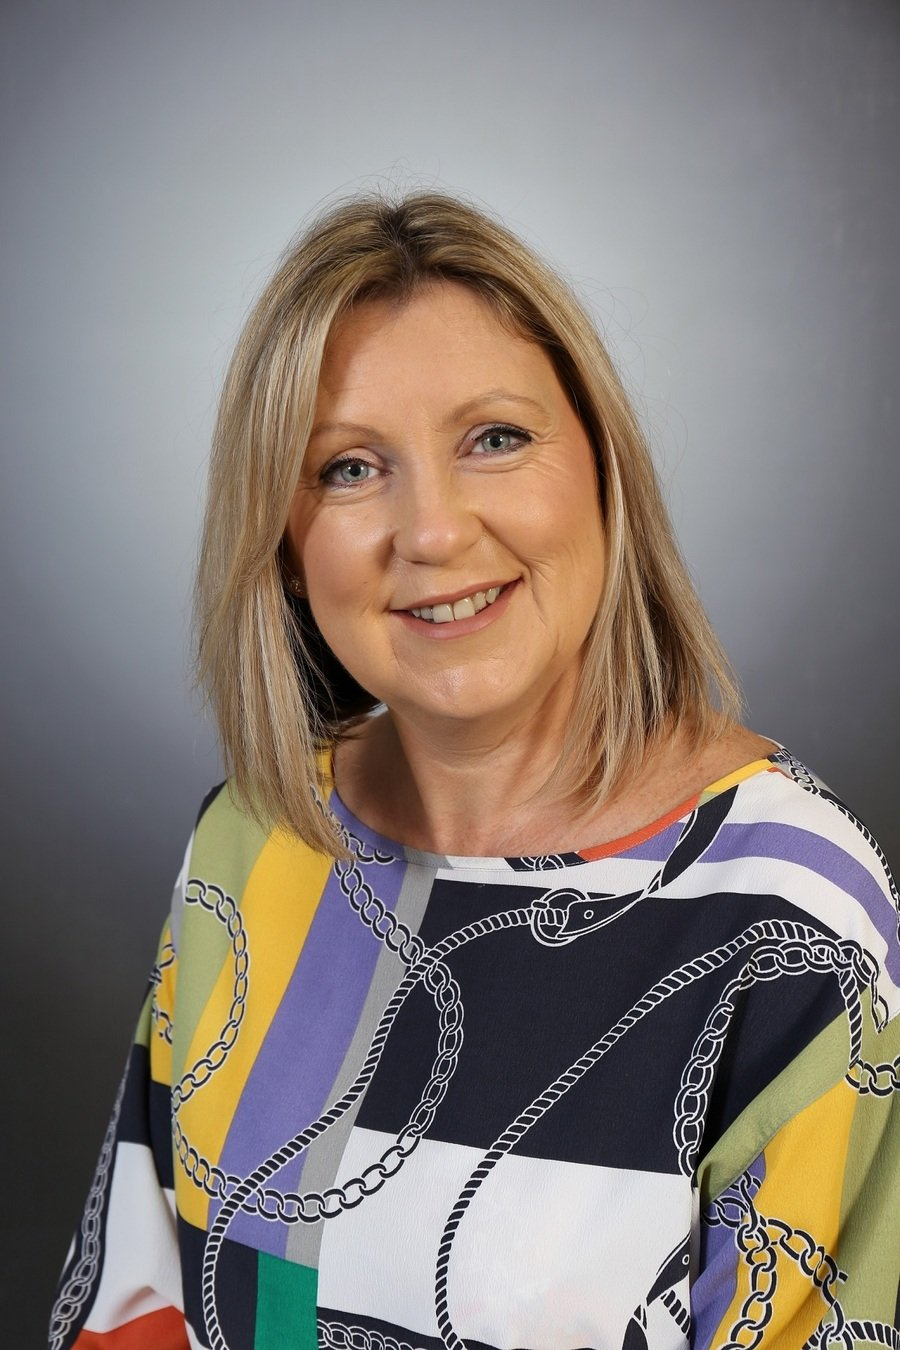 Ms J Flanagan - HR/Operational Effectiveness Manager